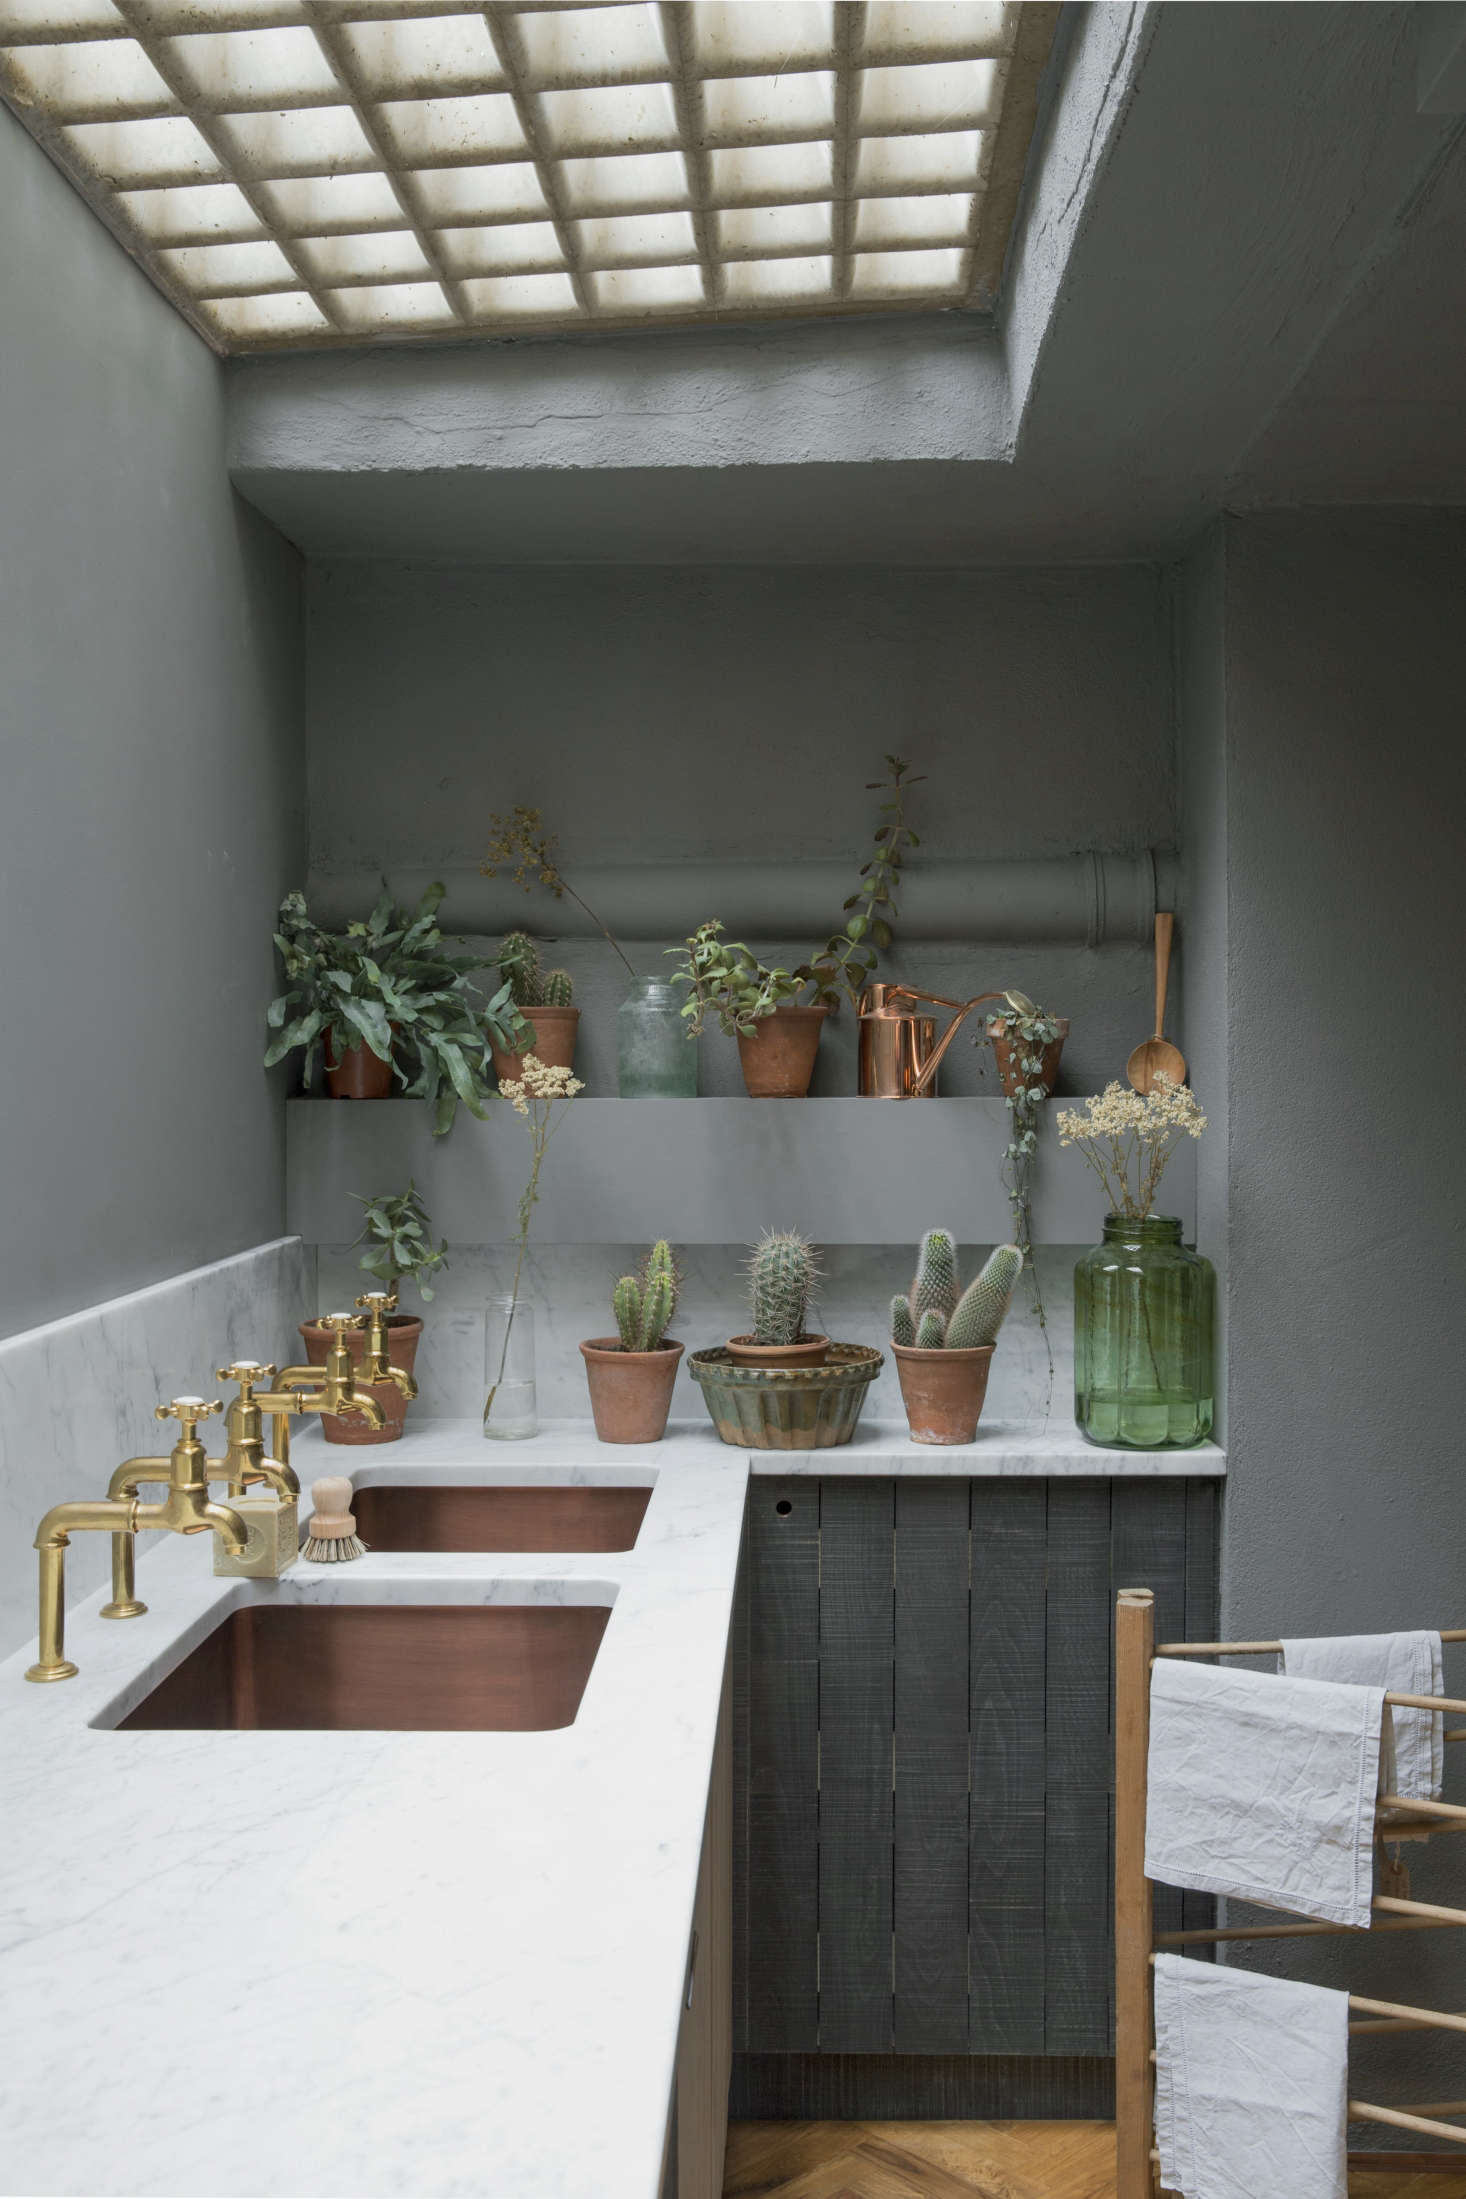 A lineup of succulents and other plants bring color to the space, and a gridded skylight filters in a soft, natural light. The walls are painted Mole&#8